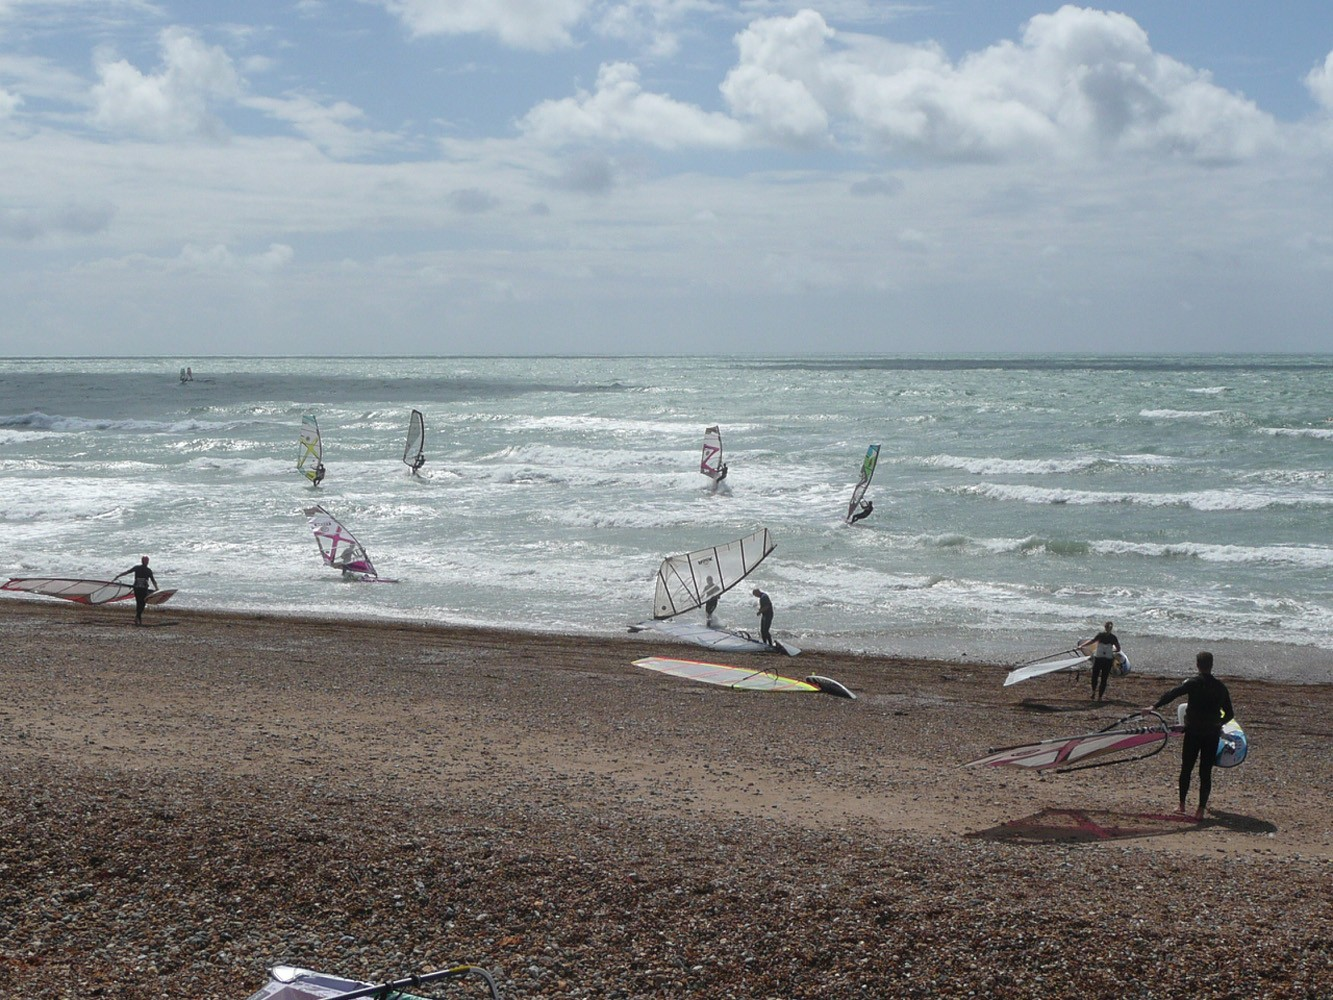 Fun windsurfing day at Hove beach